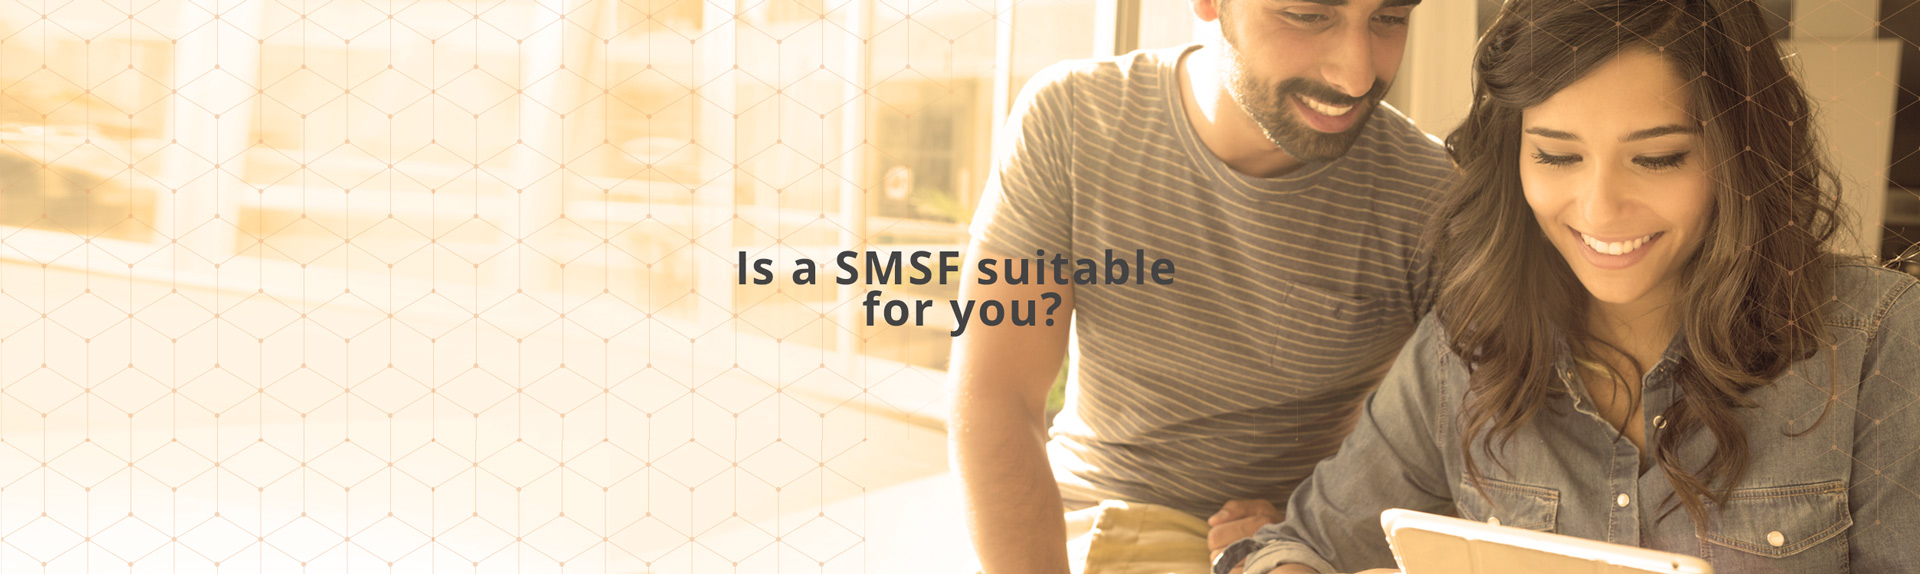 Is a SMSF suitable for you?